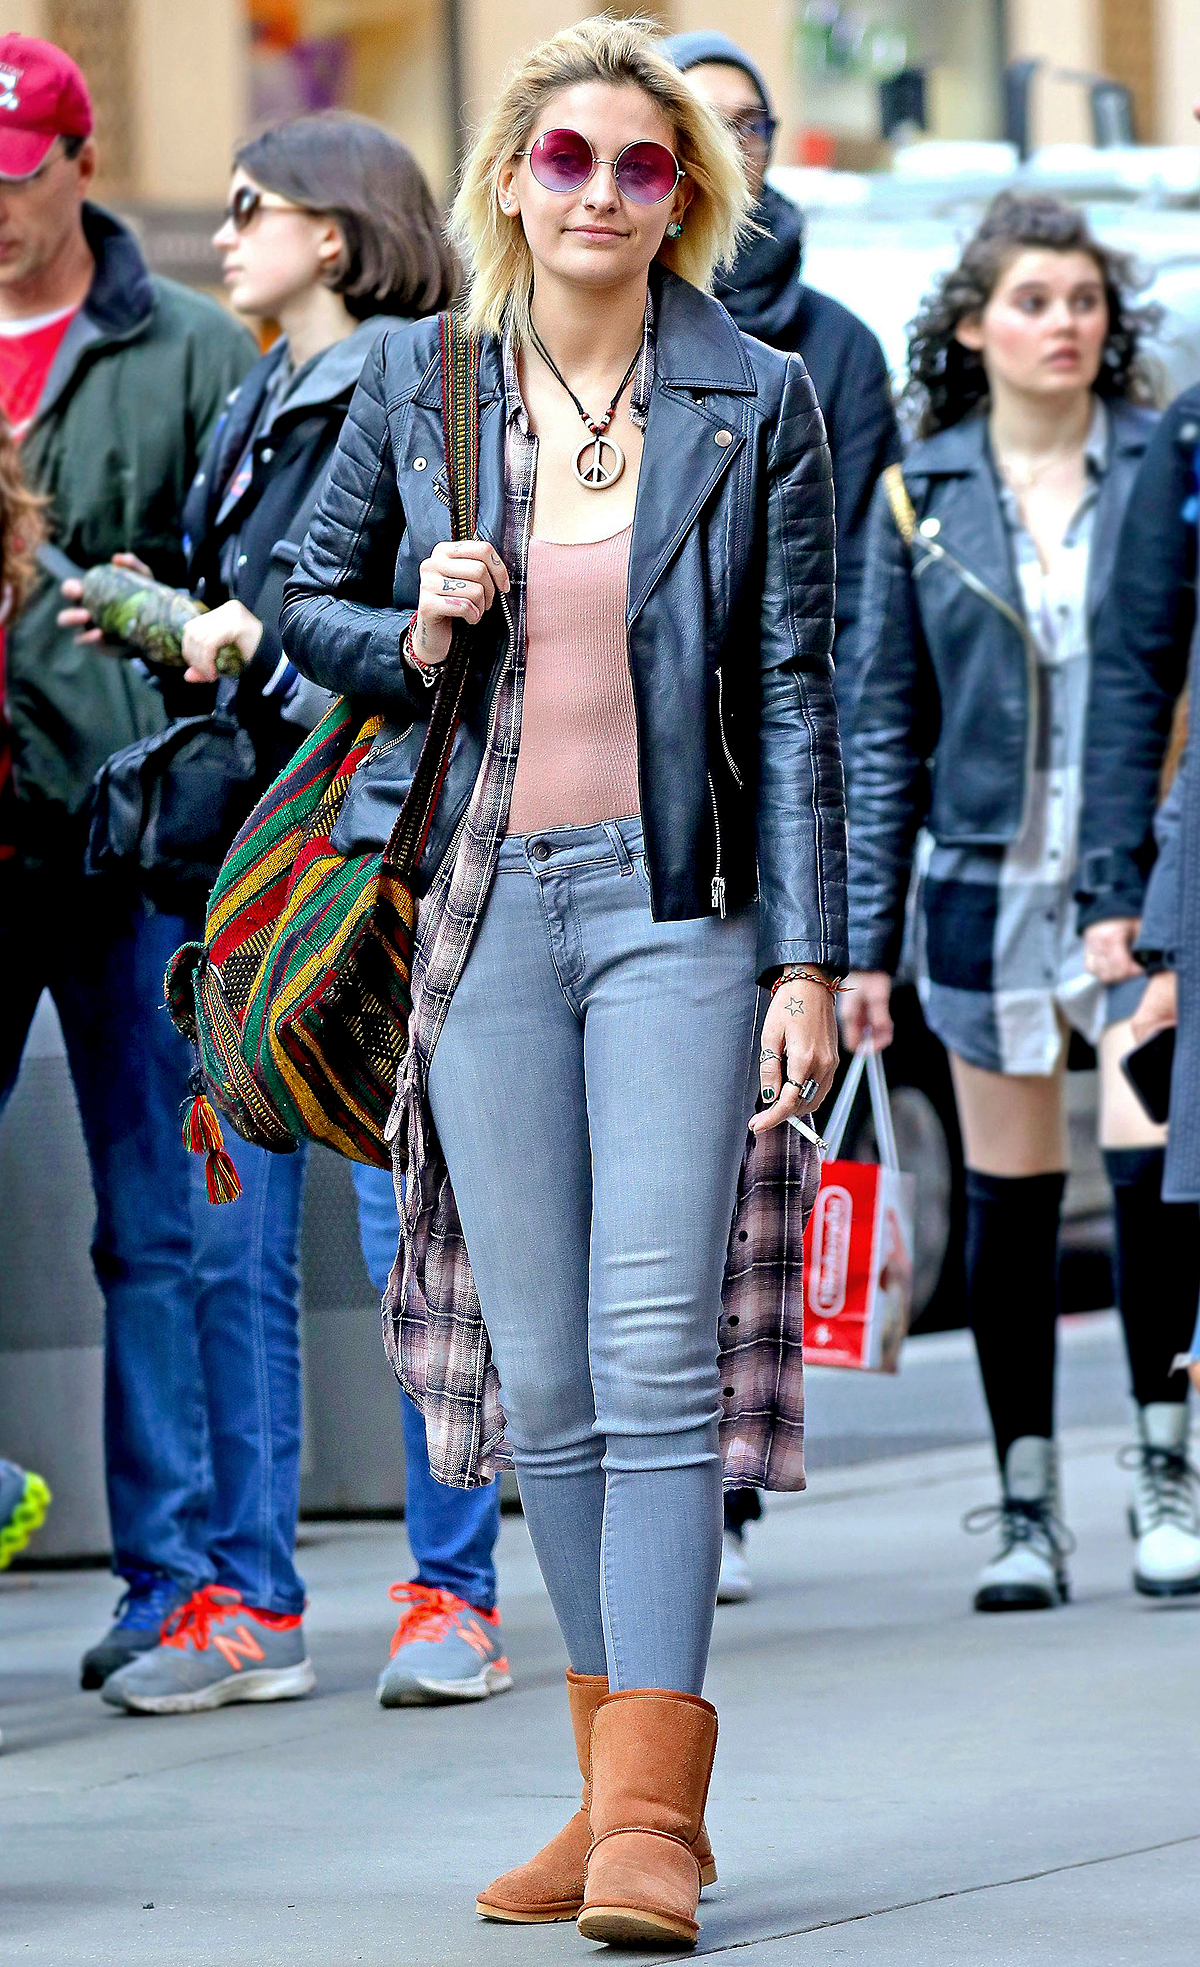 Paris Jackson spotted strolling around in Midtown with friends in New York City